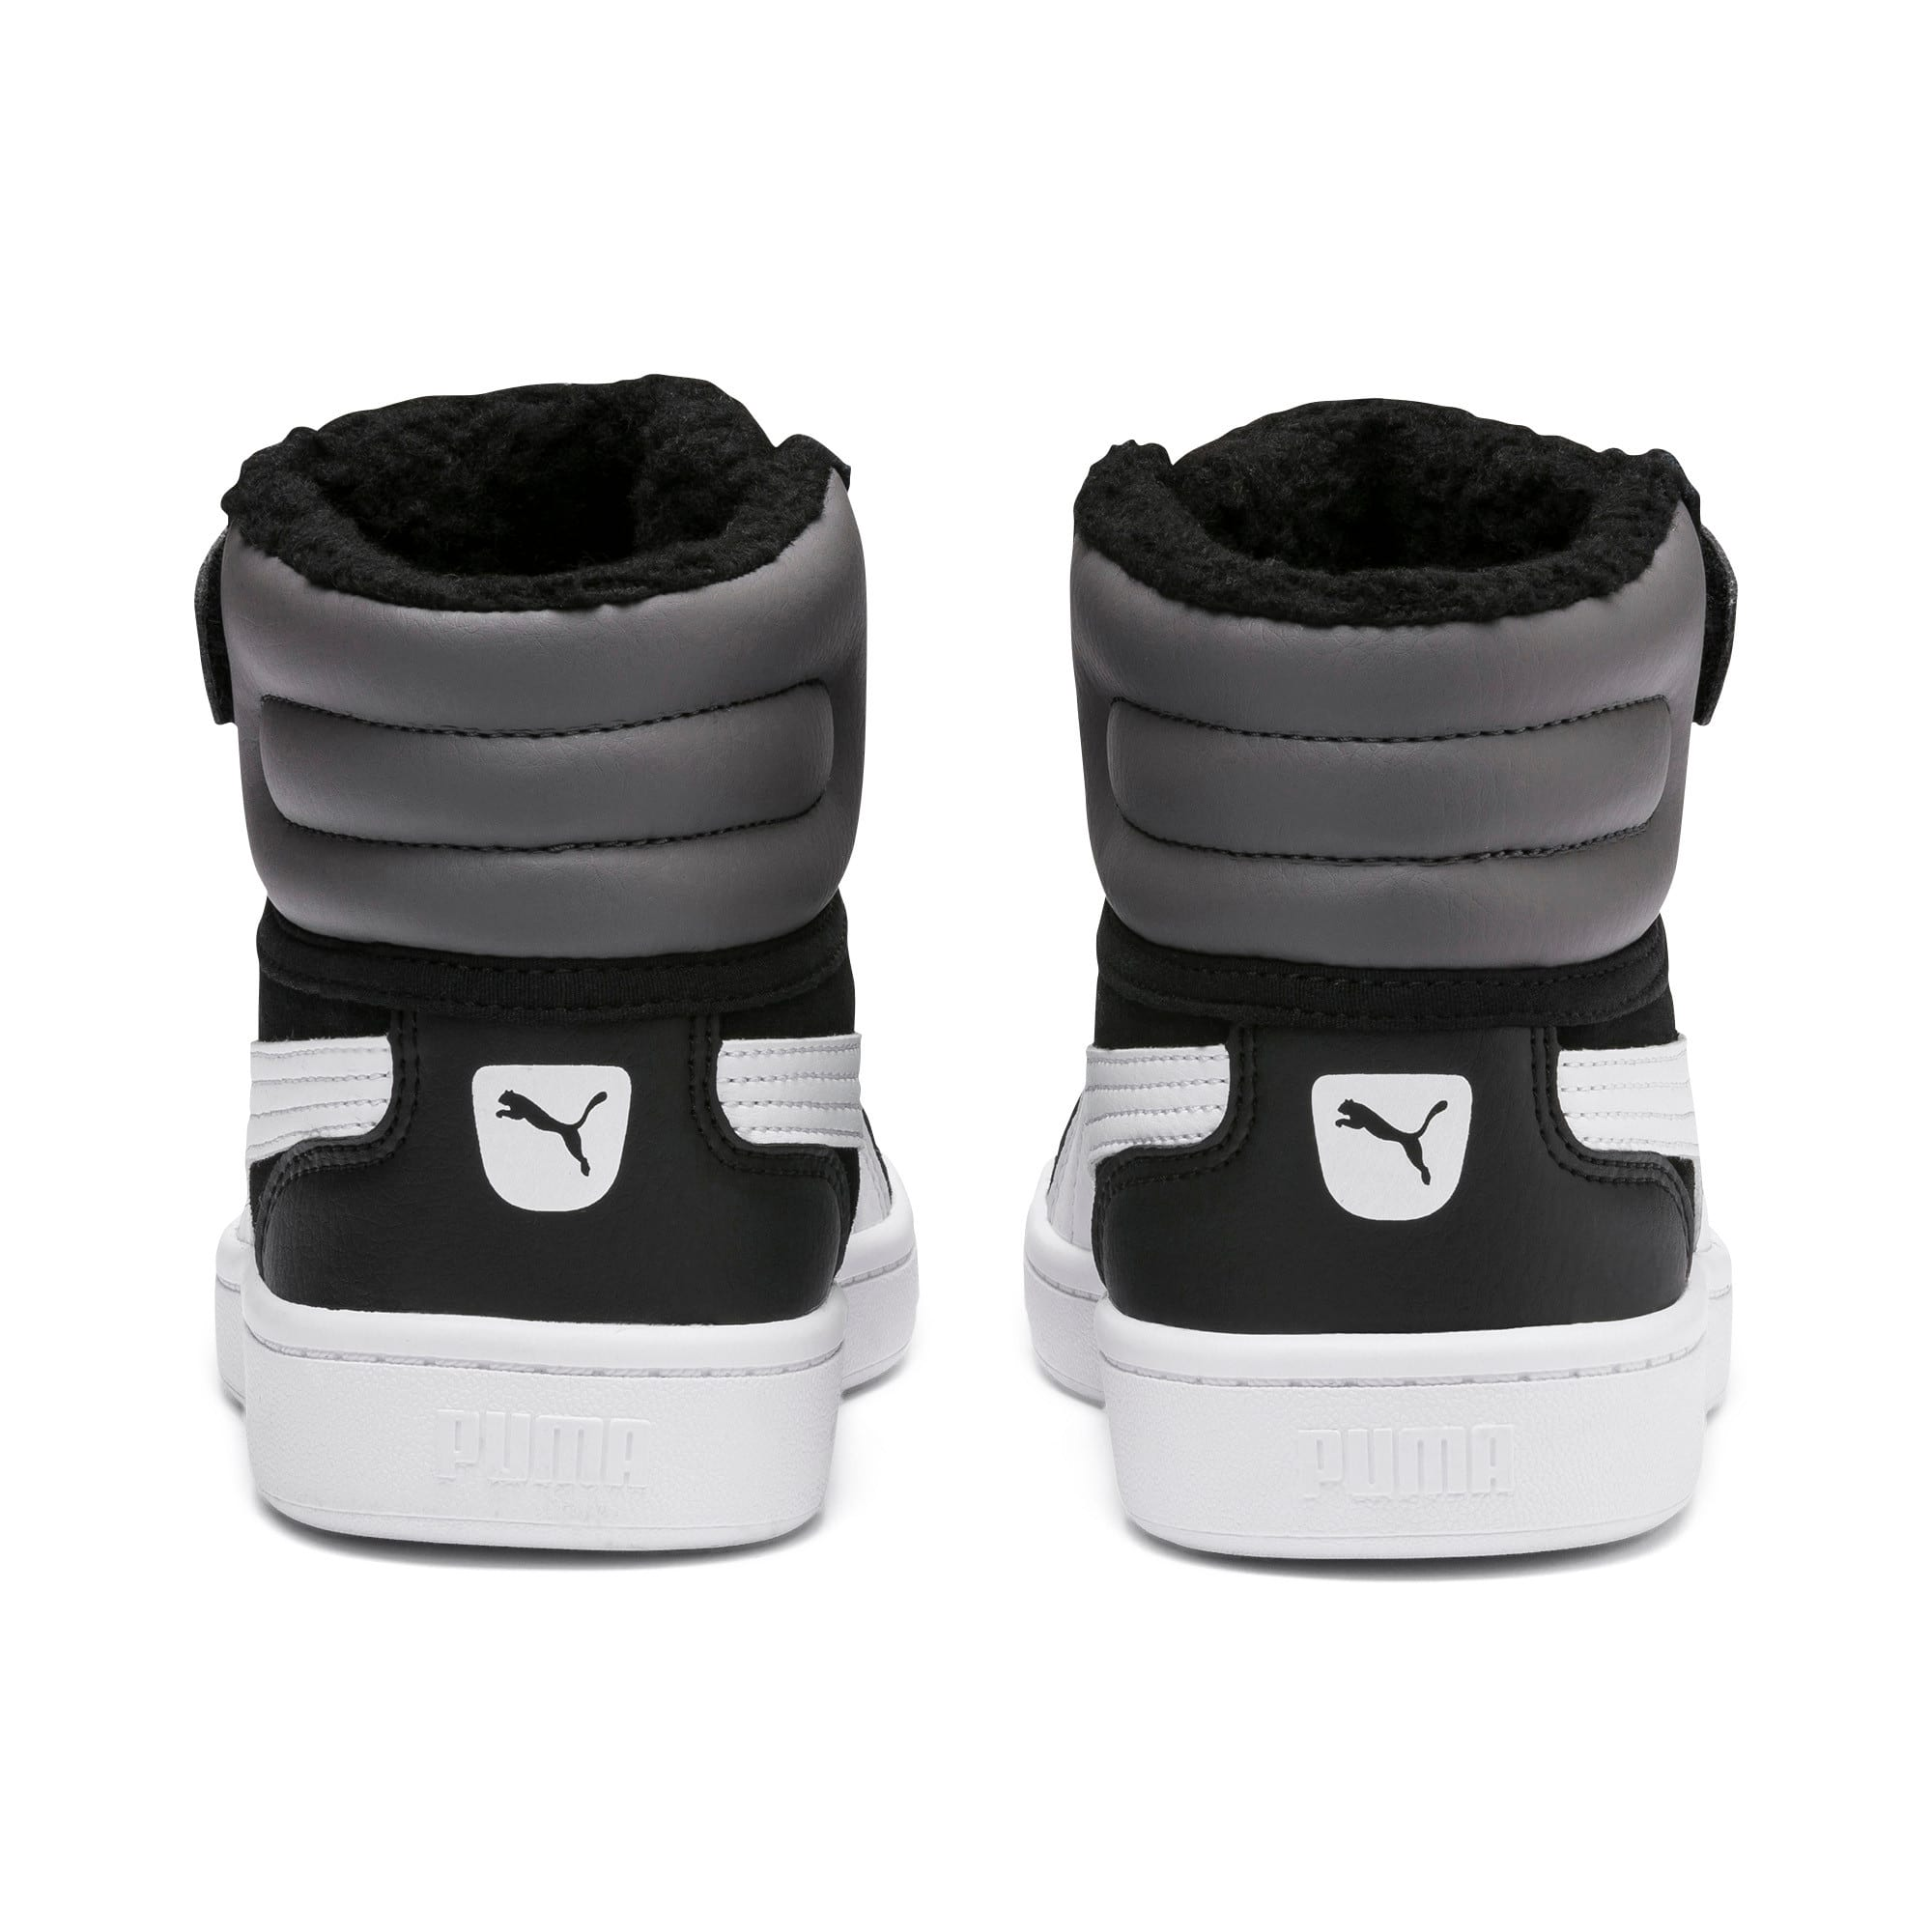 Thumbnail 3 of Vikky v2 Mid Fur V Kids' Trainers, Puma Black-CASTLEROCK-White, medium